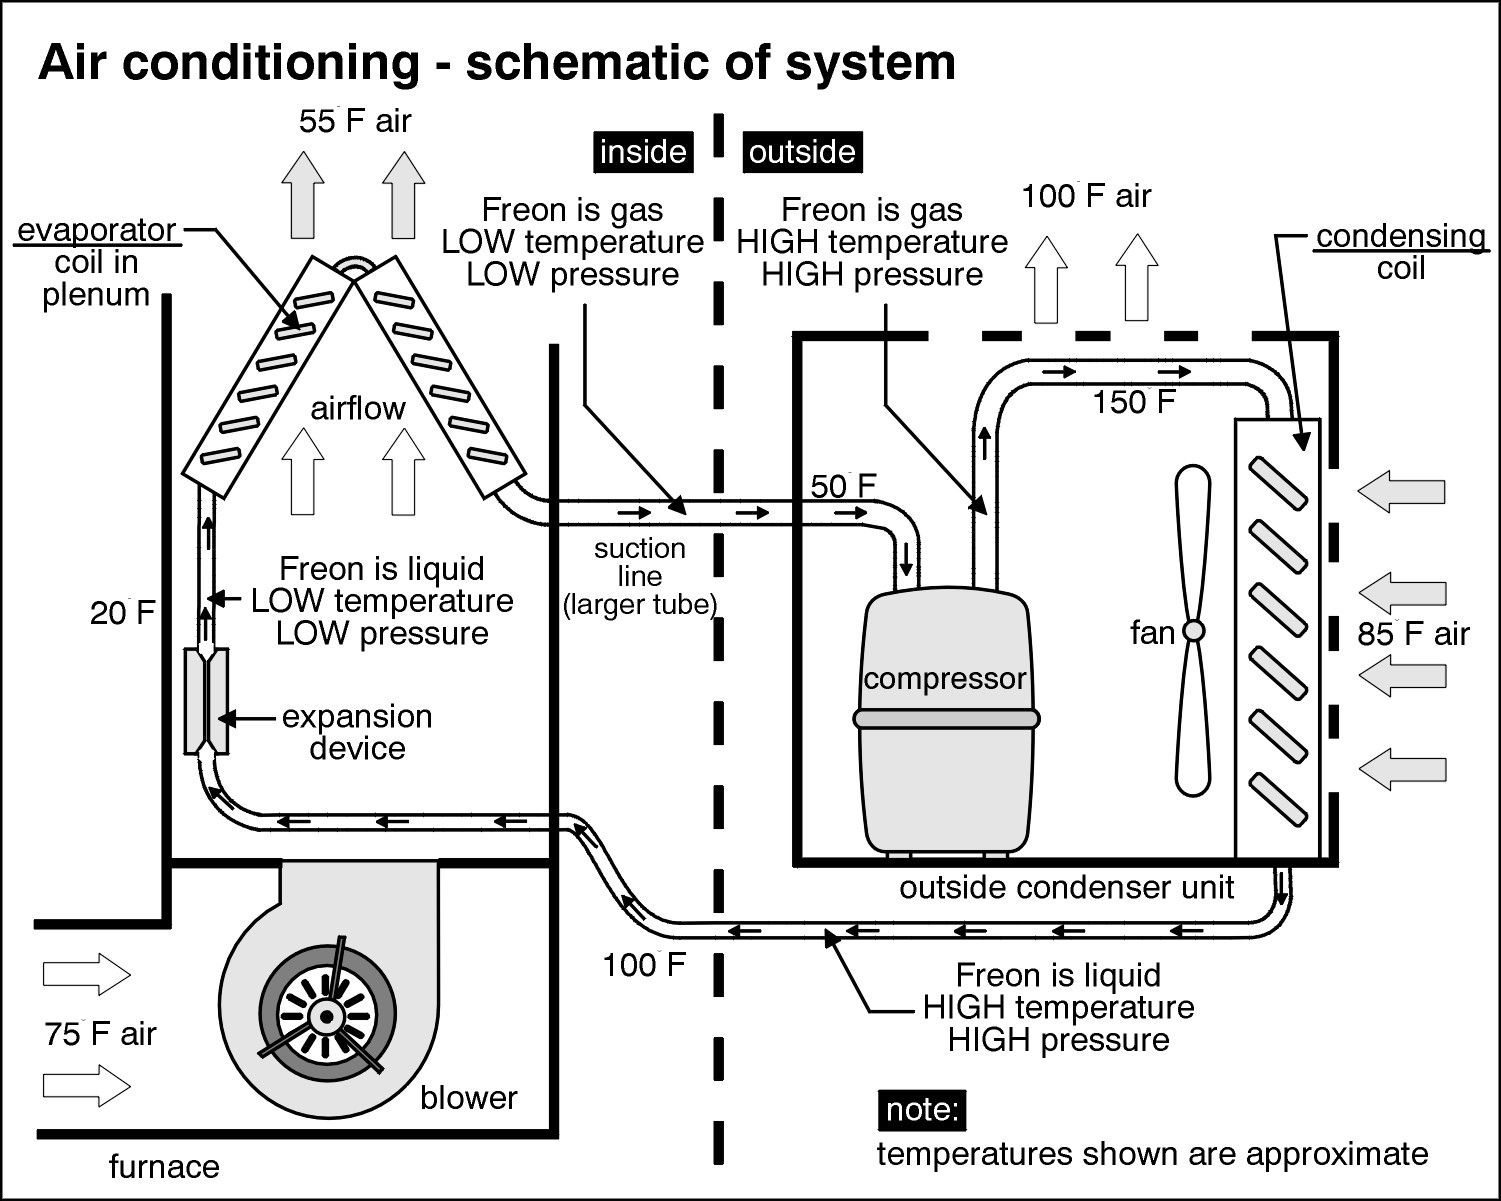 856dfb6e4efbae88695720f13adc8bce central air conditioning system diagram before you call a ac diagram of central air conditioner at mifinder.co